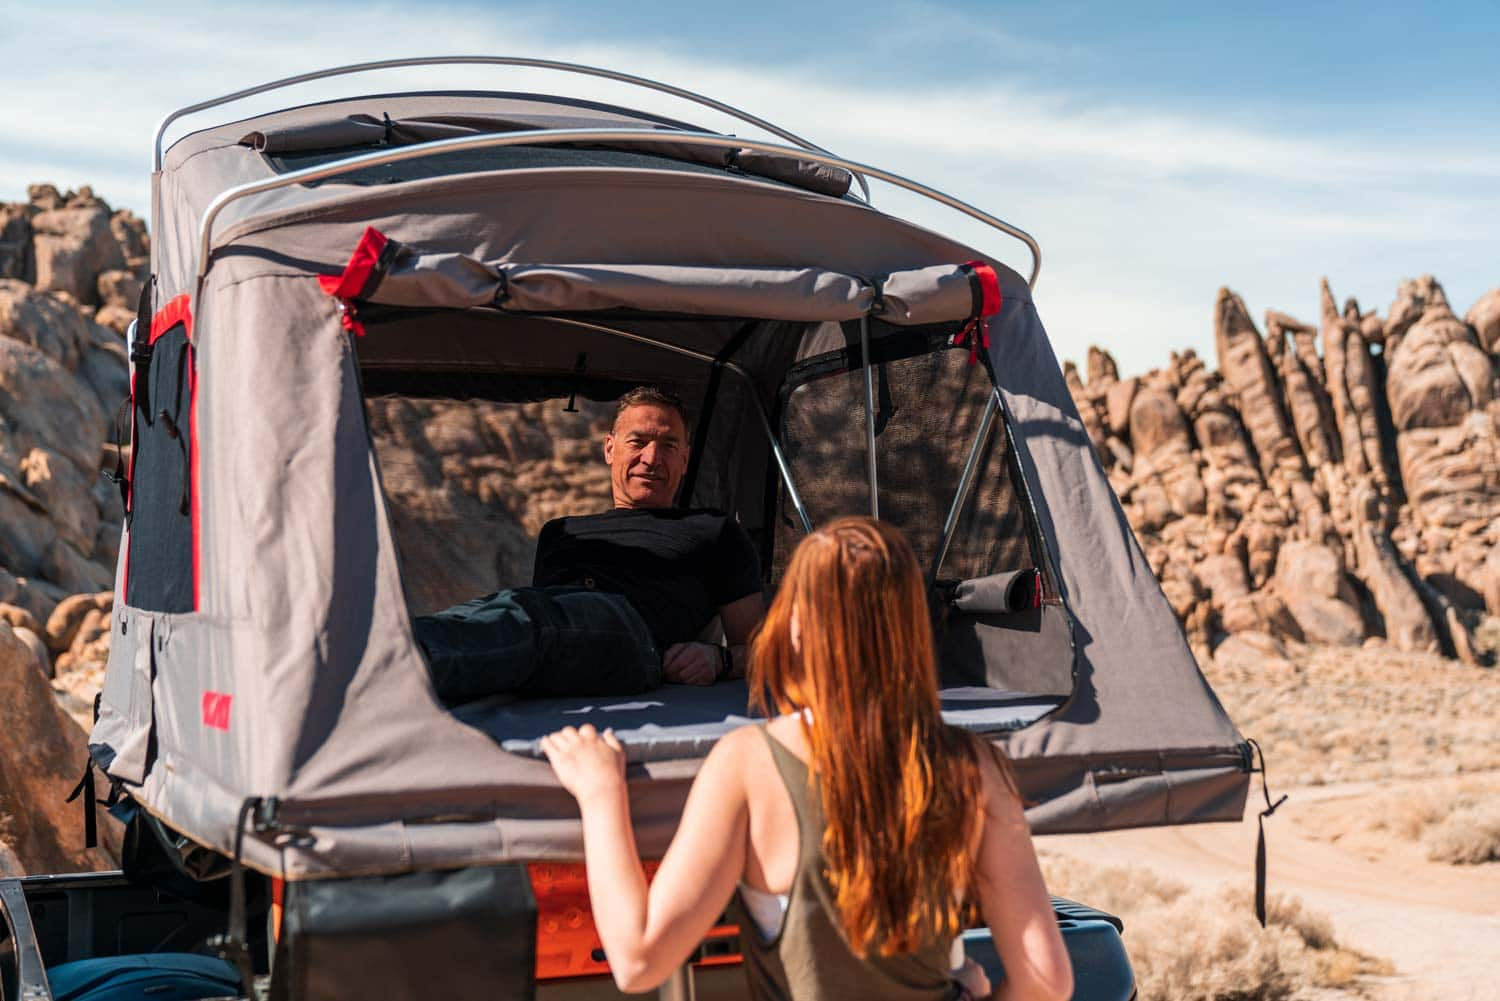 Open Yakima SkyRise HD Tent on the OutPost HD Rack